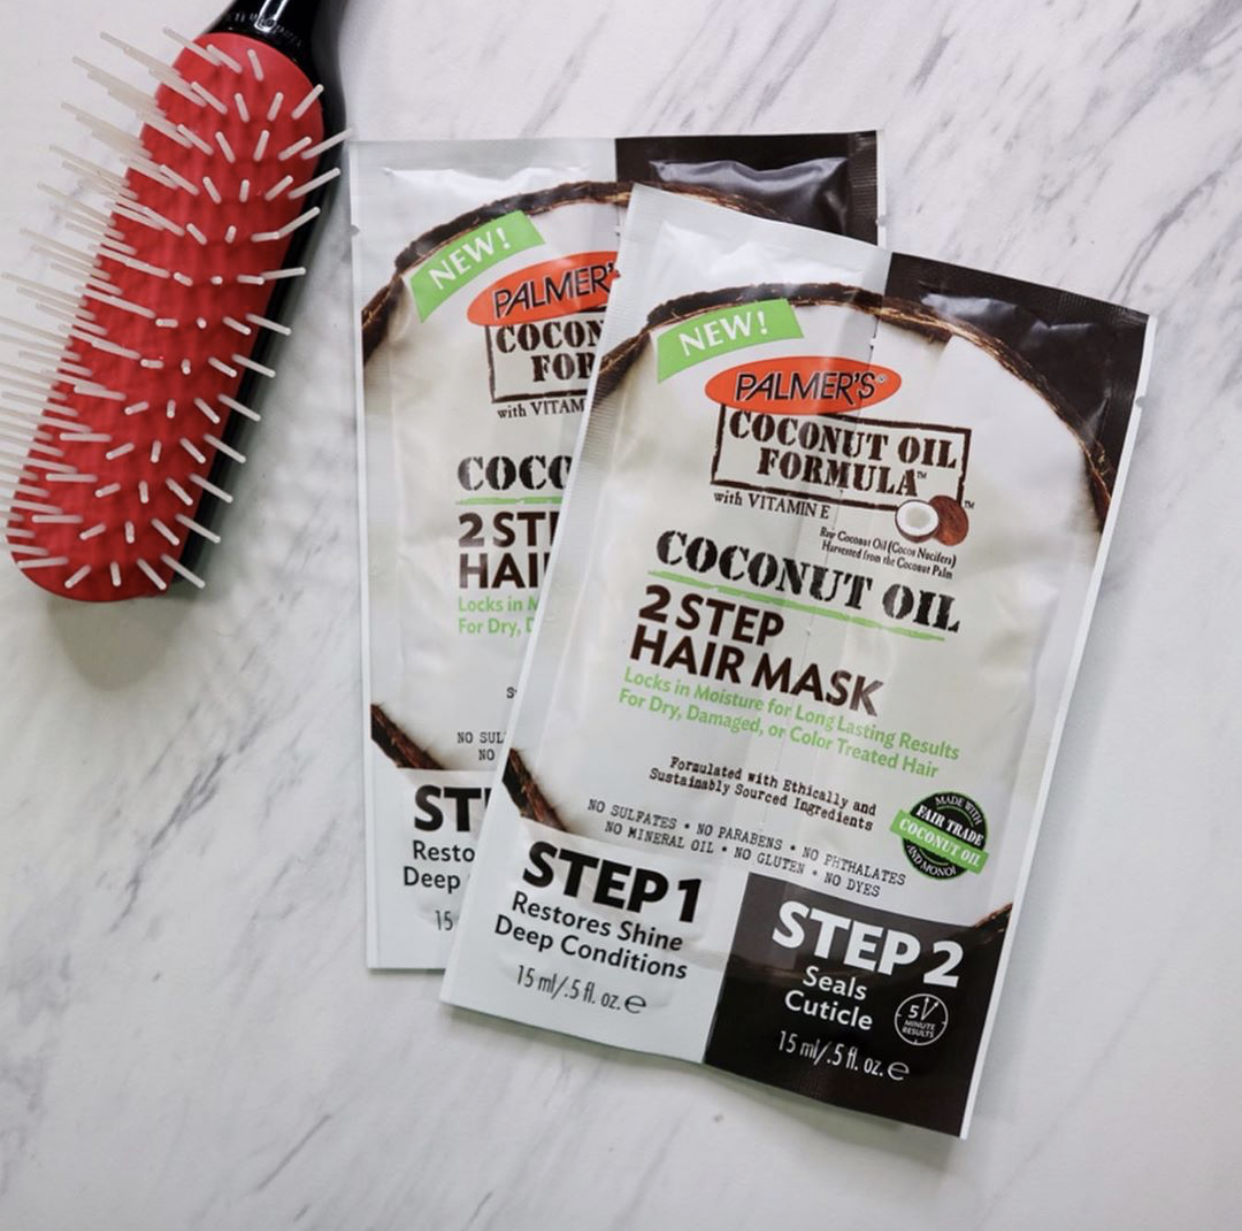 Palmer's Coconut Oil Formula 2 Step Hair Mask for dry hair on table with brush